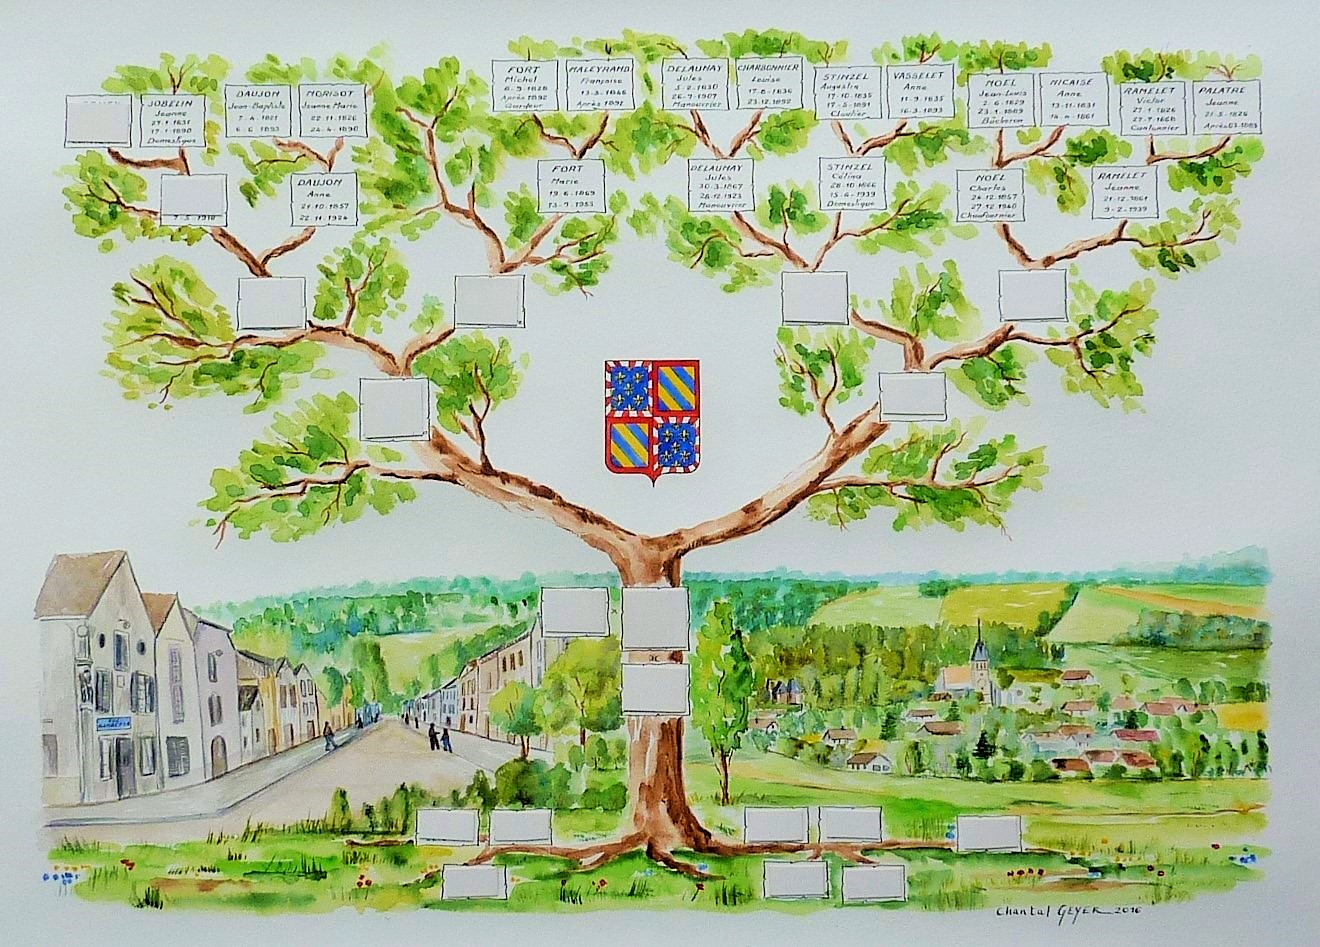 arbre genealogique descendance dessin darbre genealogique armoiries de bourgogne blason familial chantal szymoniak